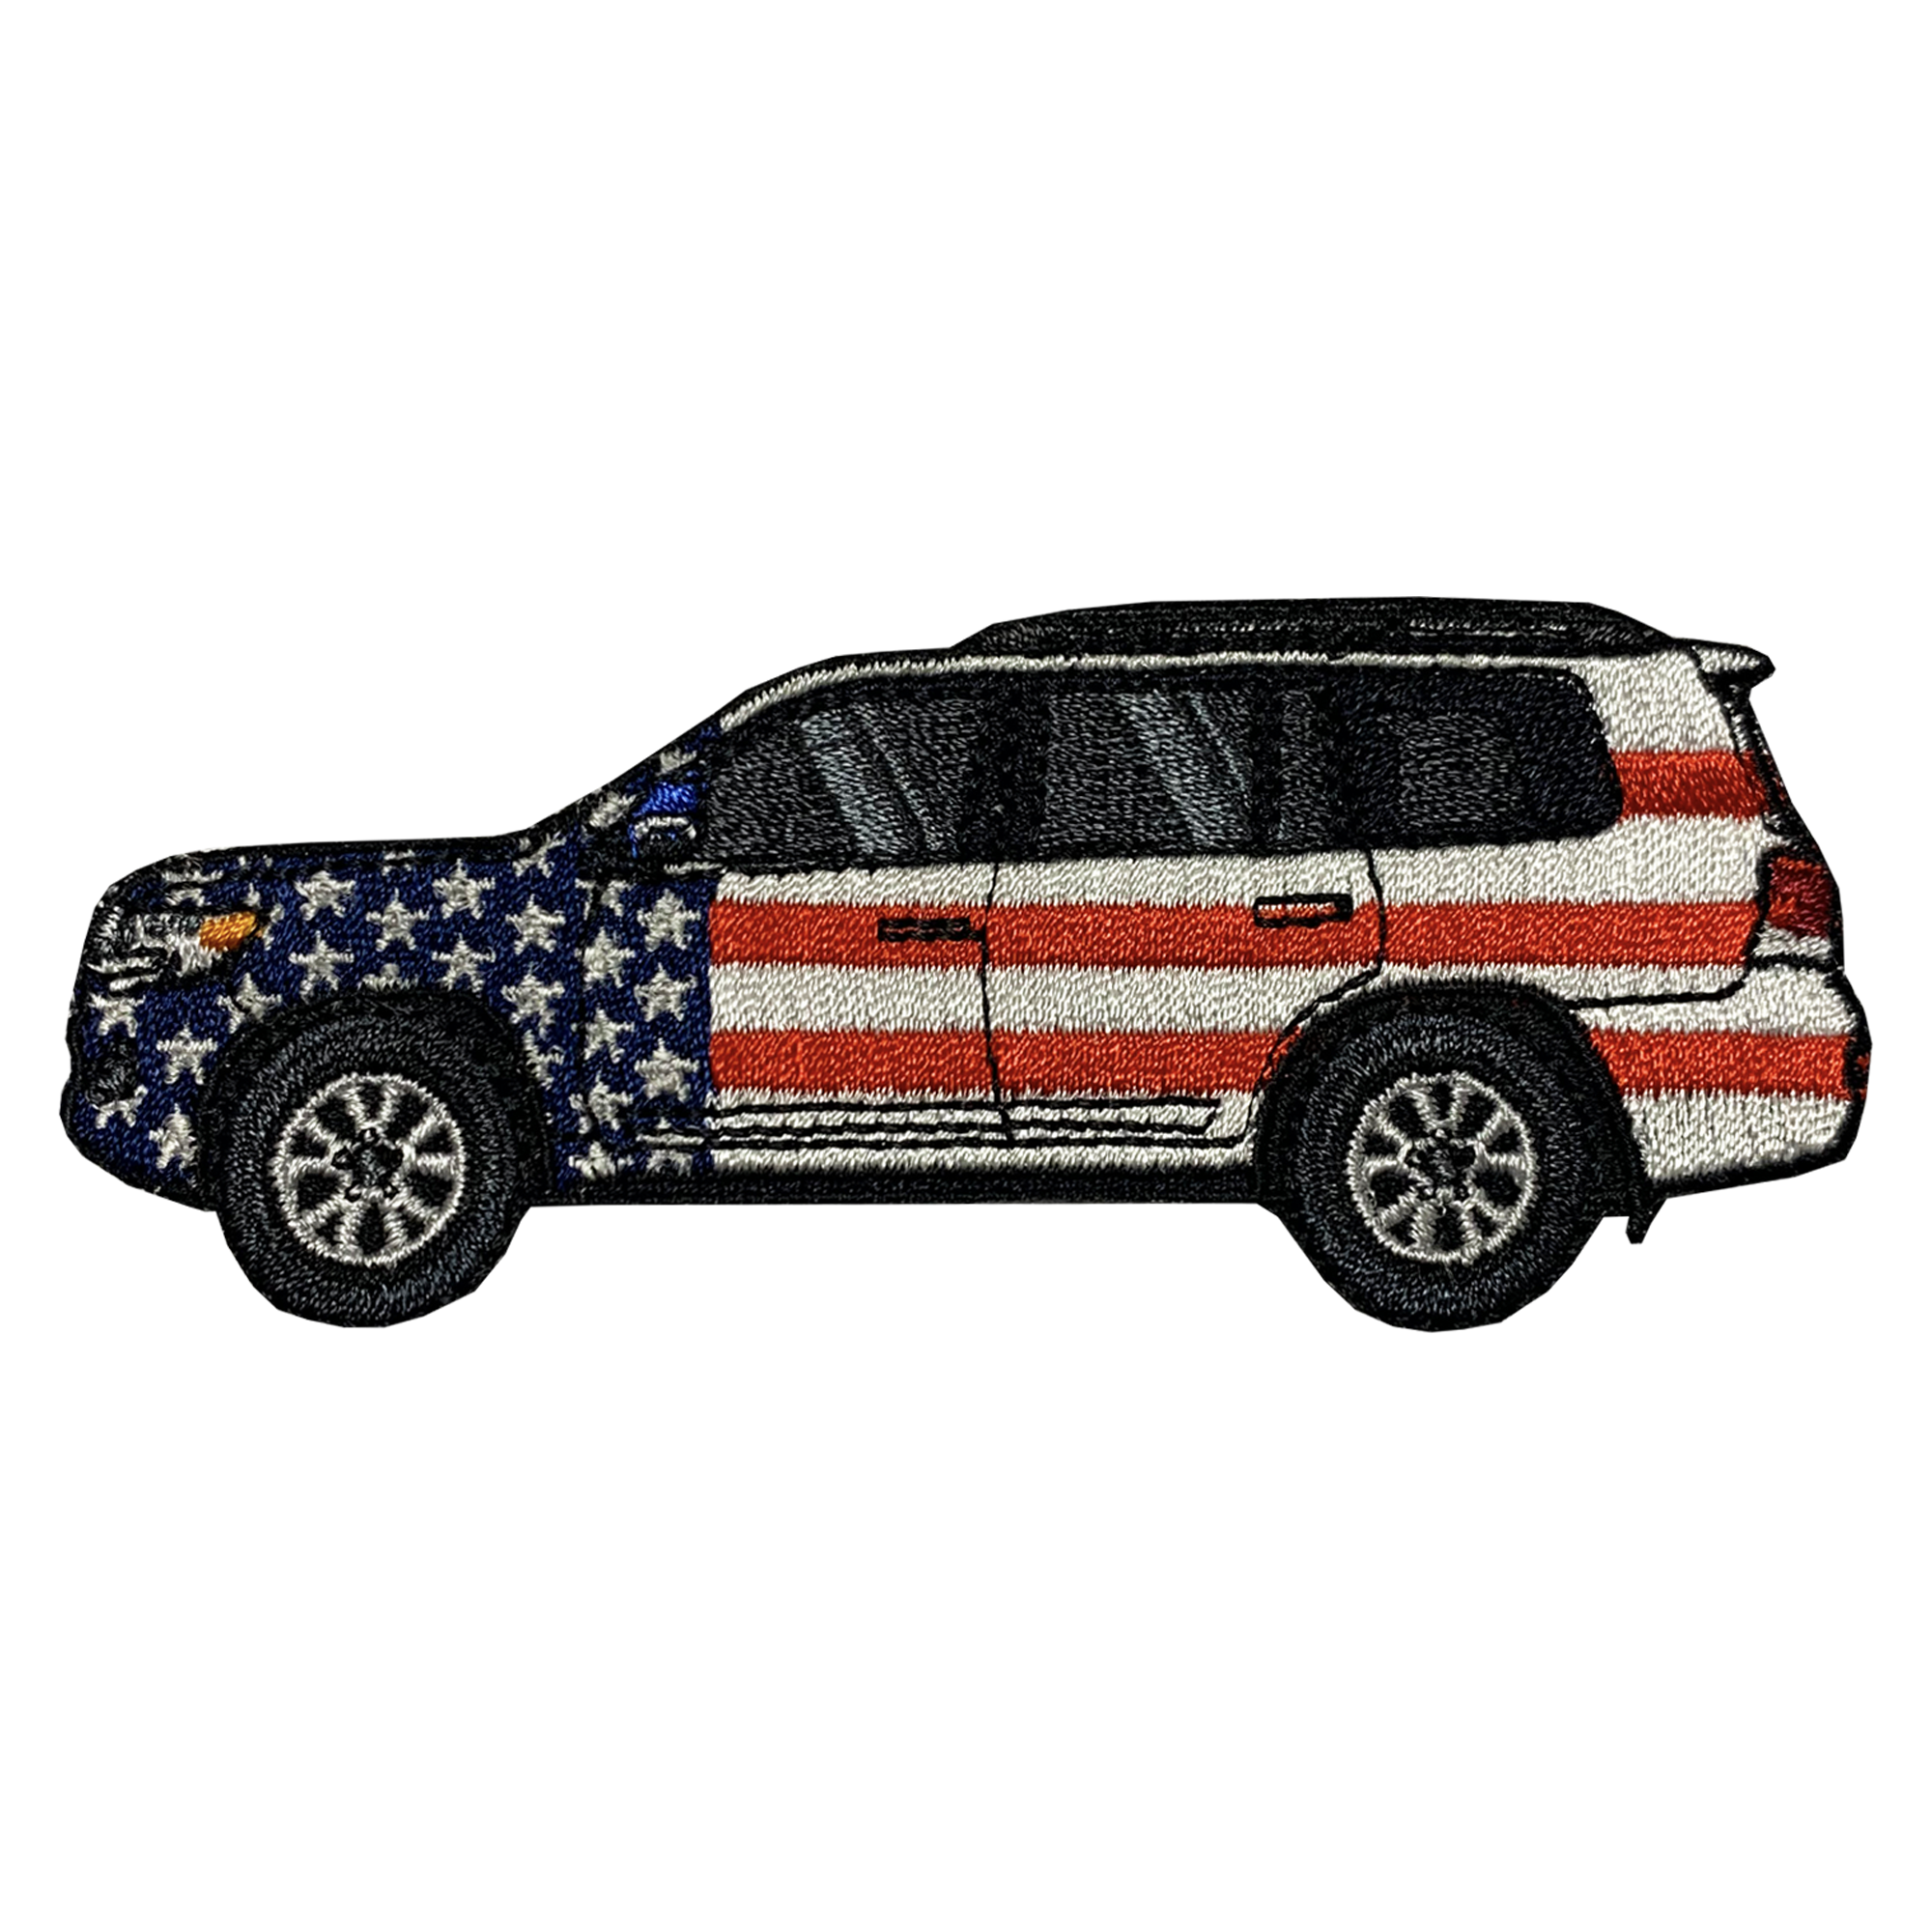 200 Series Land Cruiser Patriotic Patch